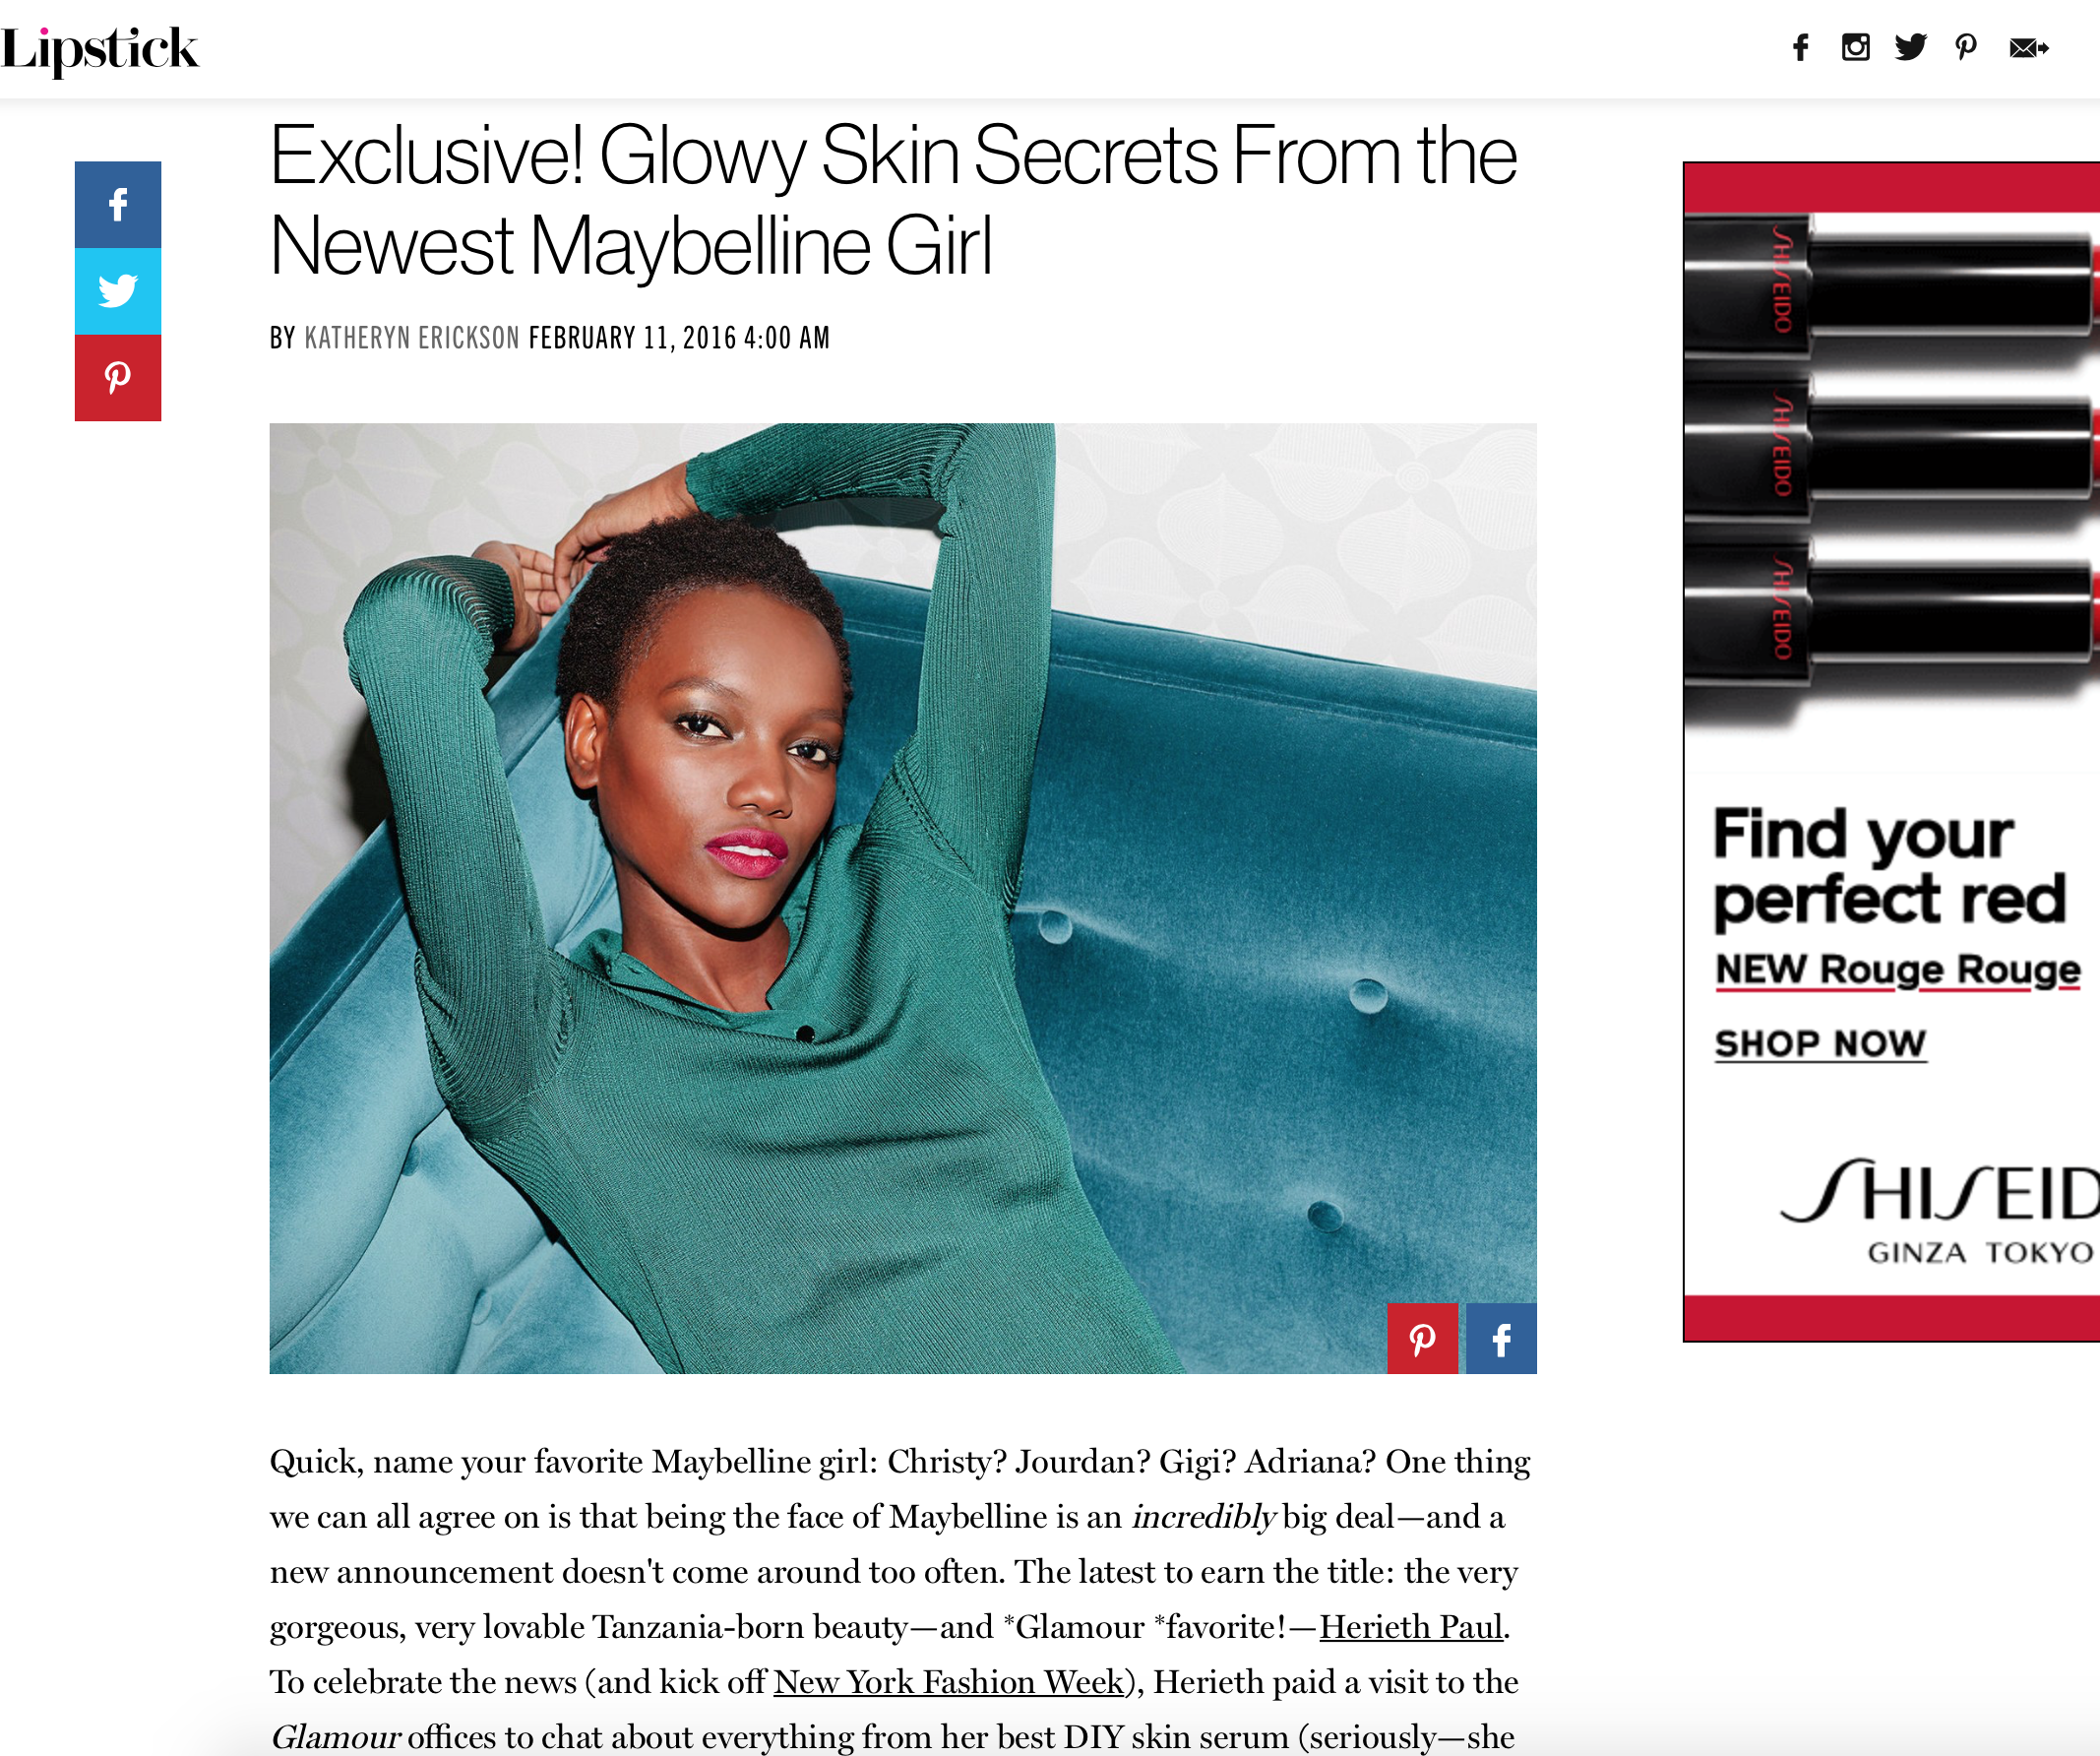 Press: Glamour     Featuring:    Herieth Paul